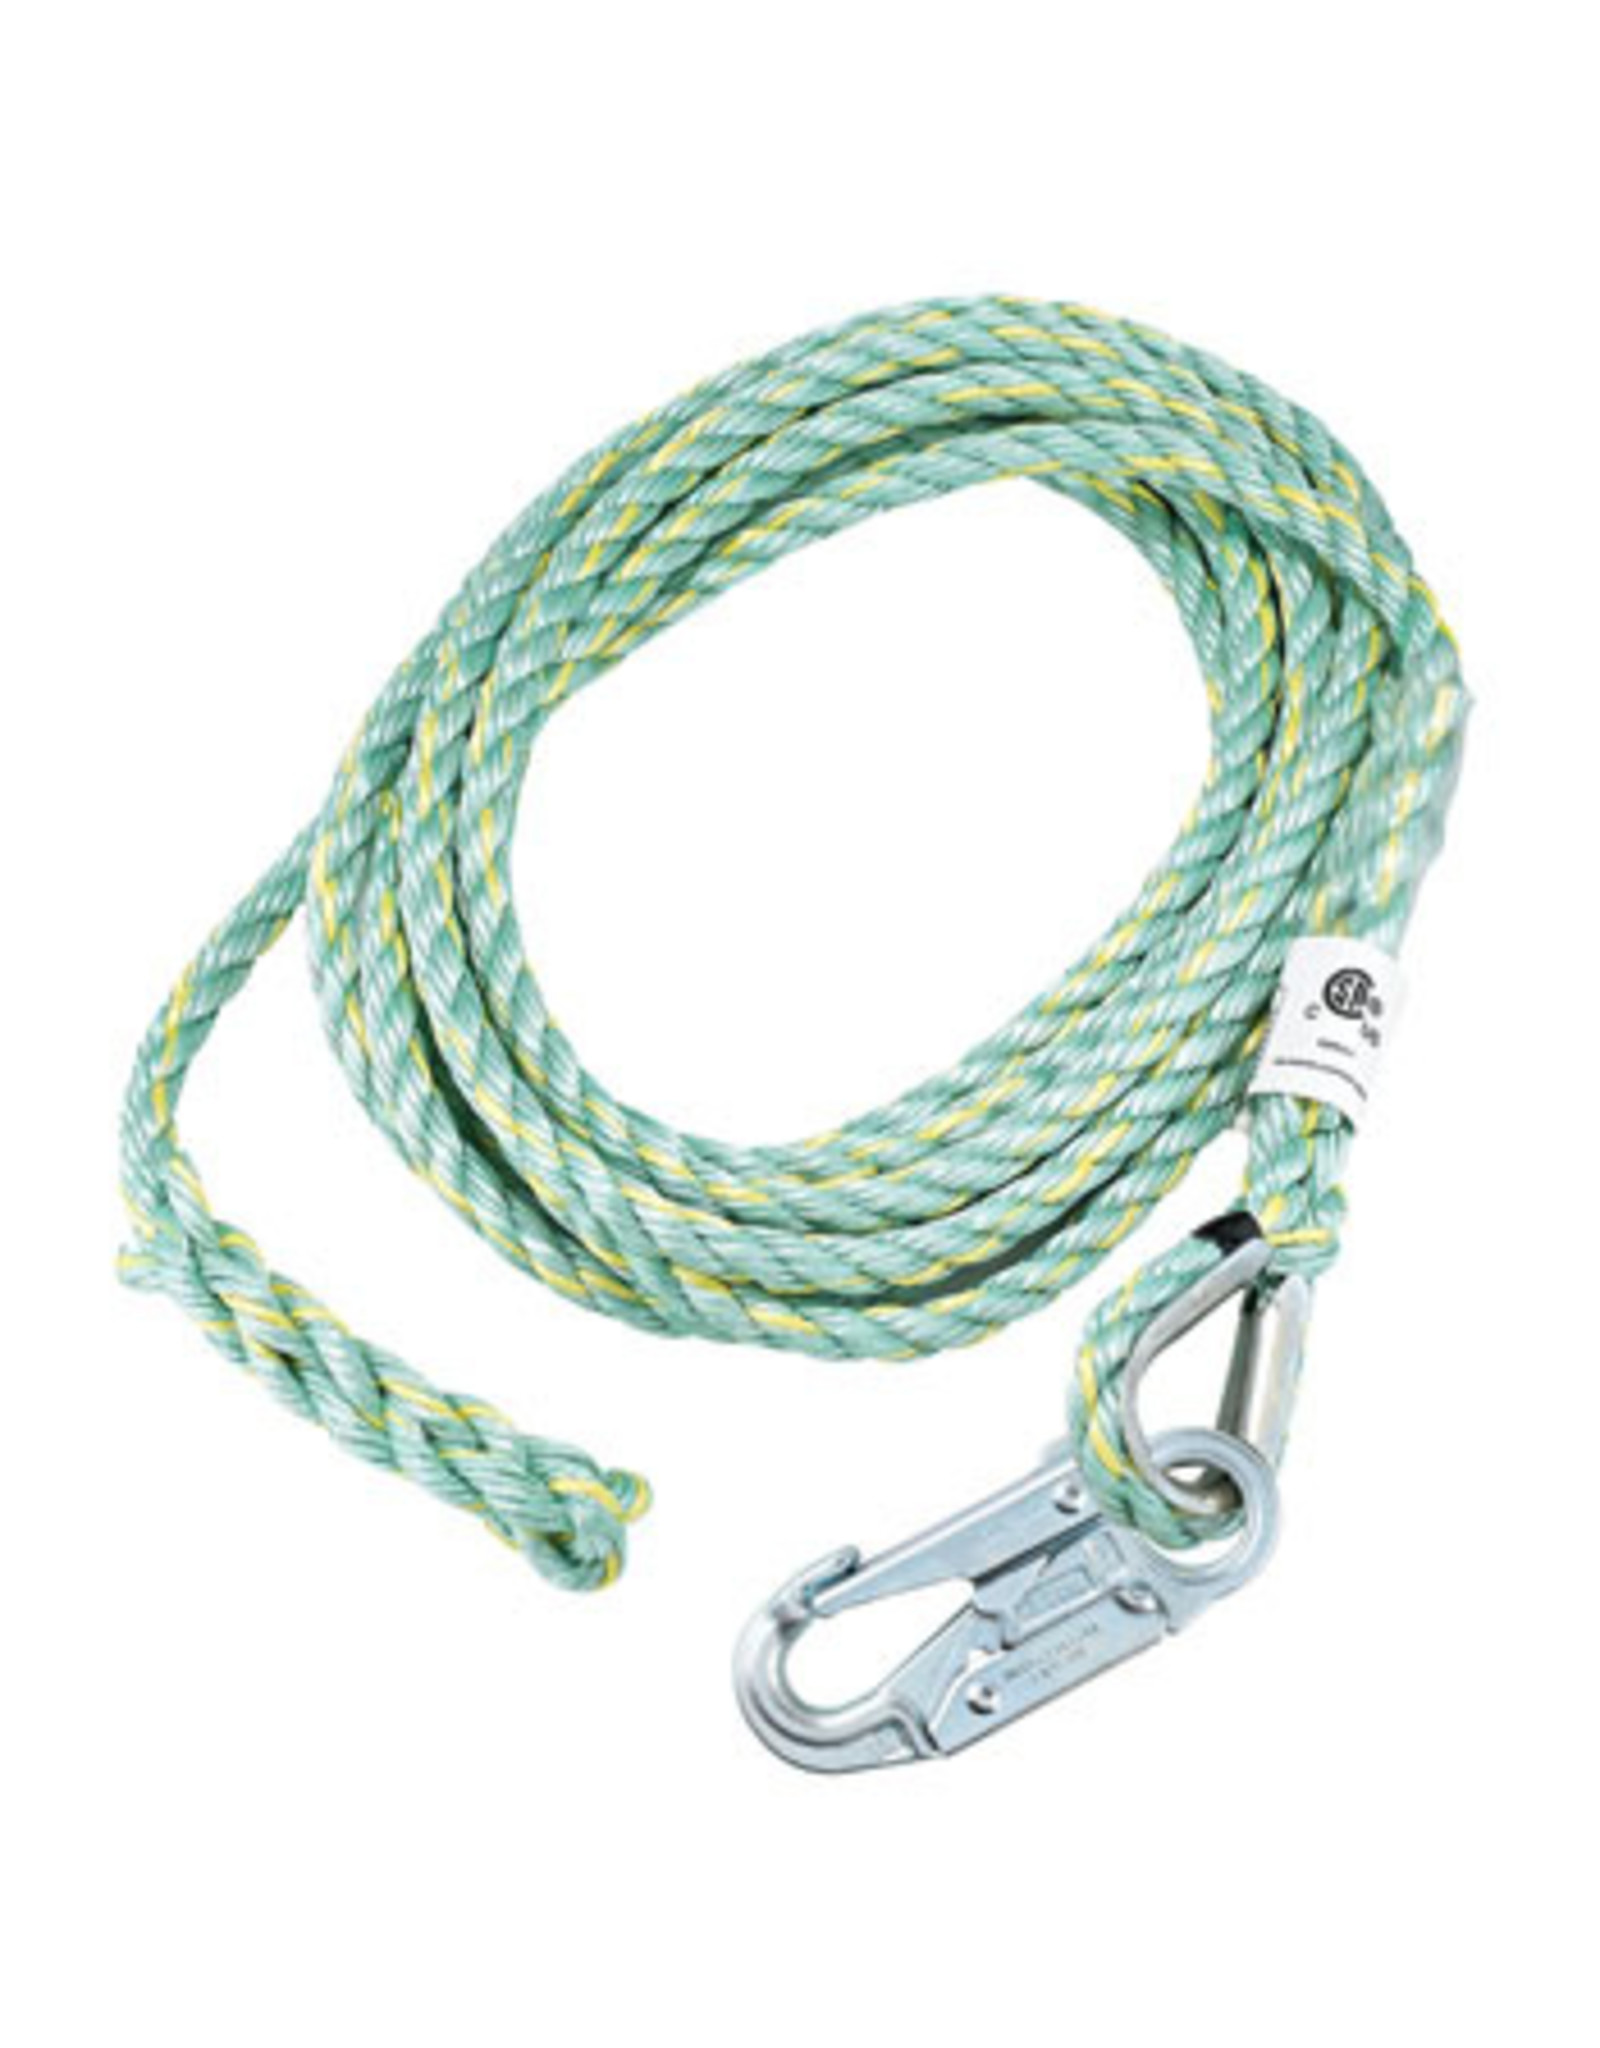 Co-Polymer Blend Rope 5/8 in (16 MM) 3-strand rope for vertical lifeline, comes with 1 termination and 1 snap hook with 3/4 in opening model FP6650HS. Length 50ft